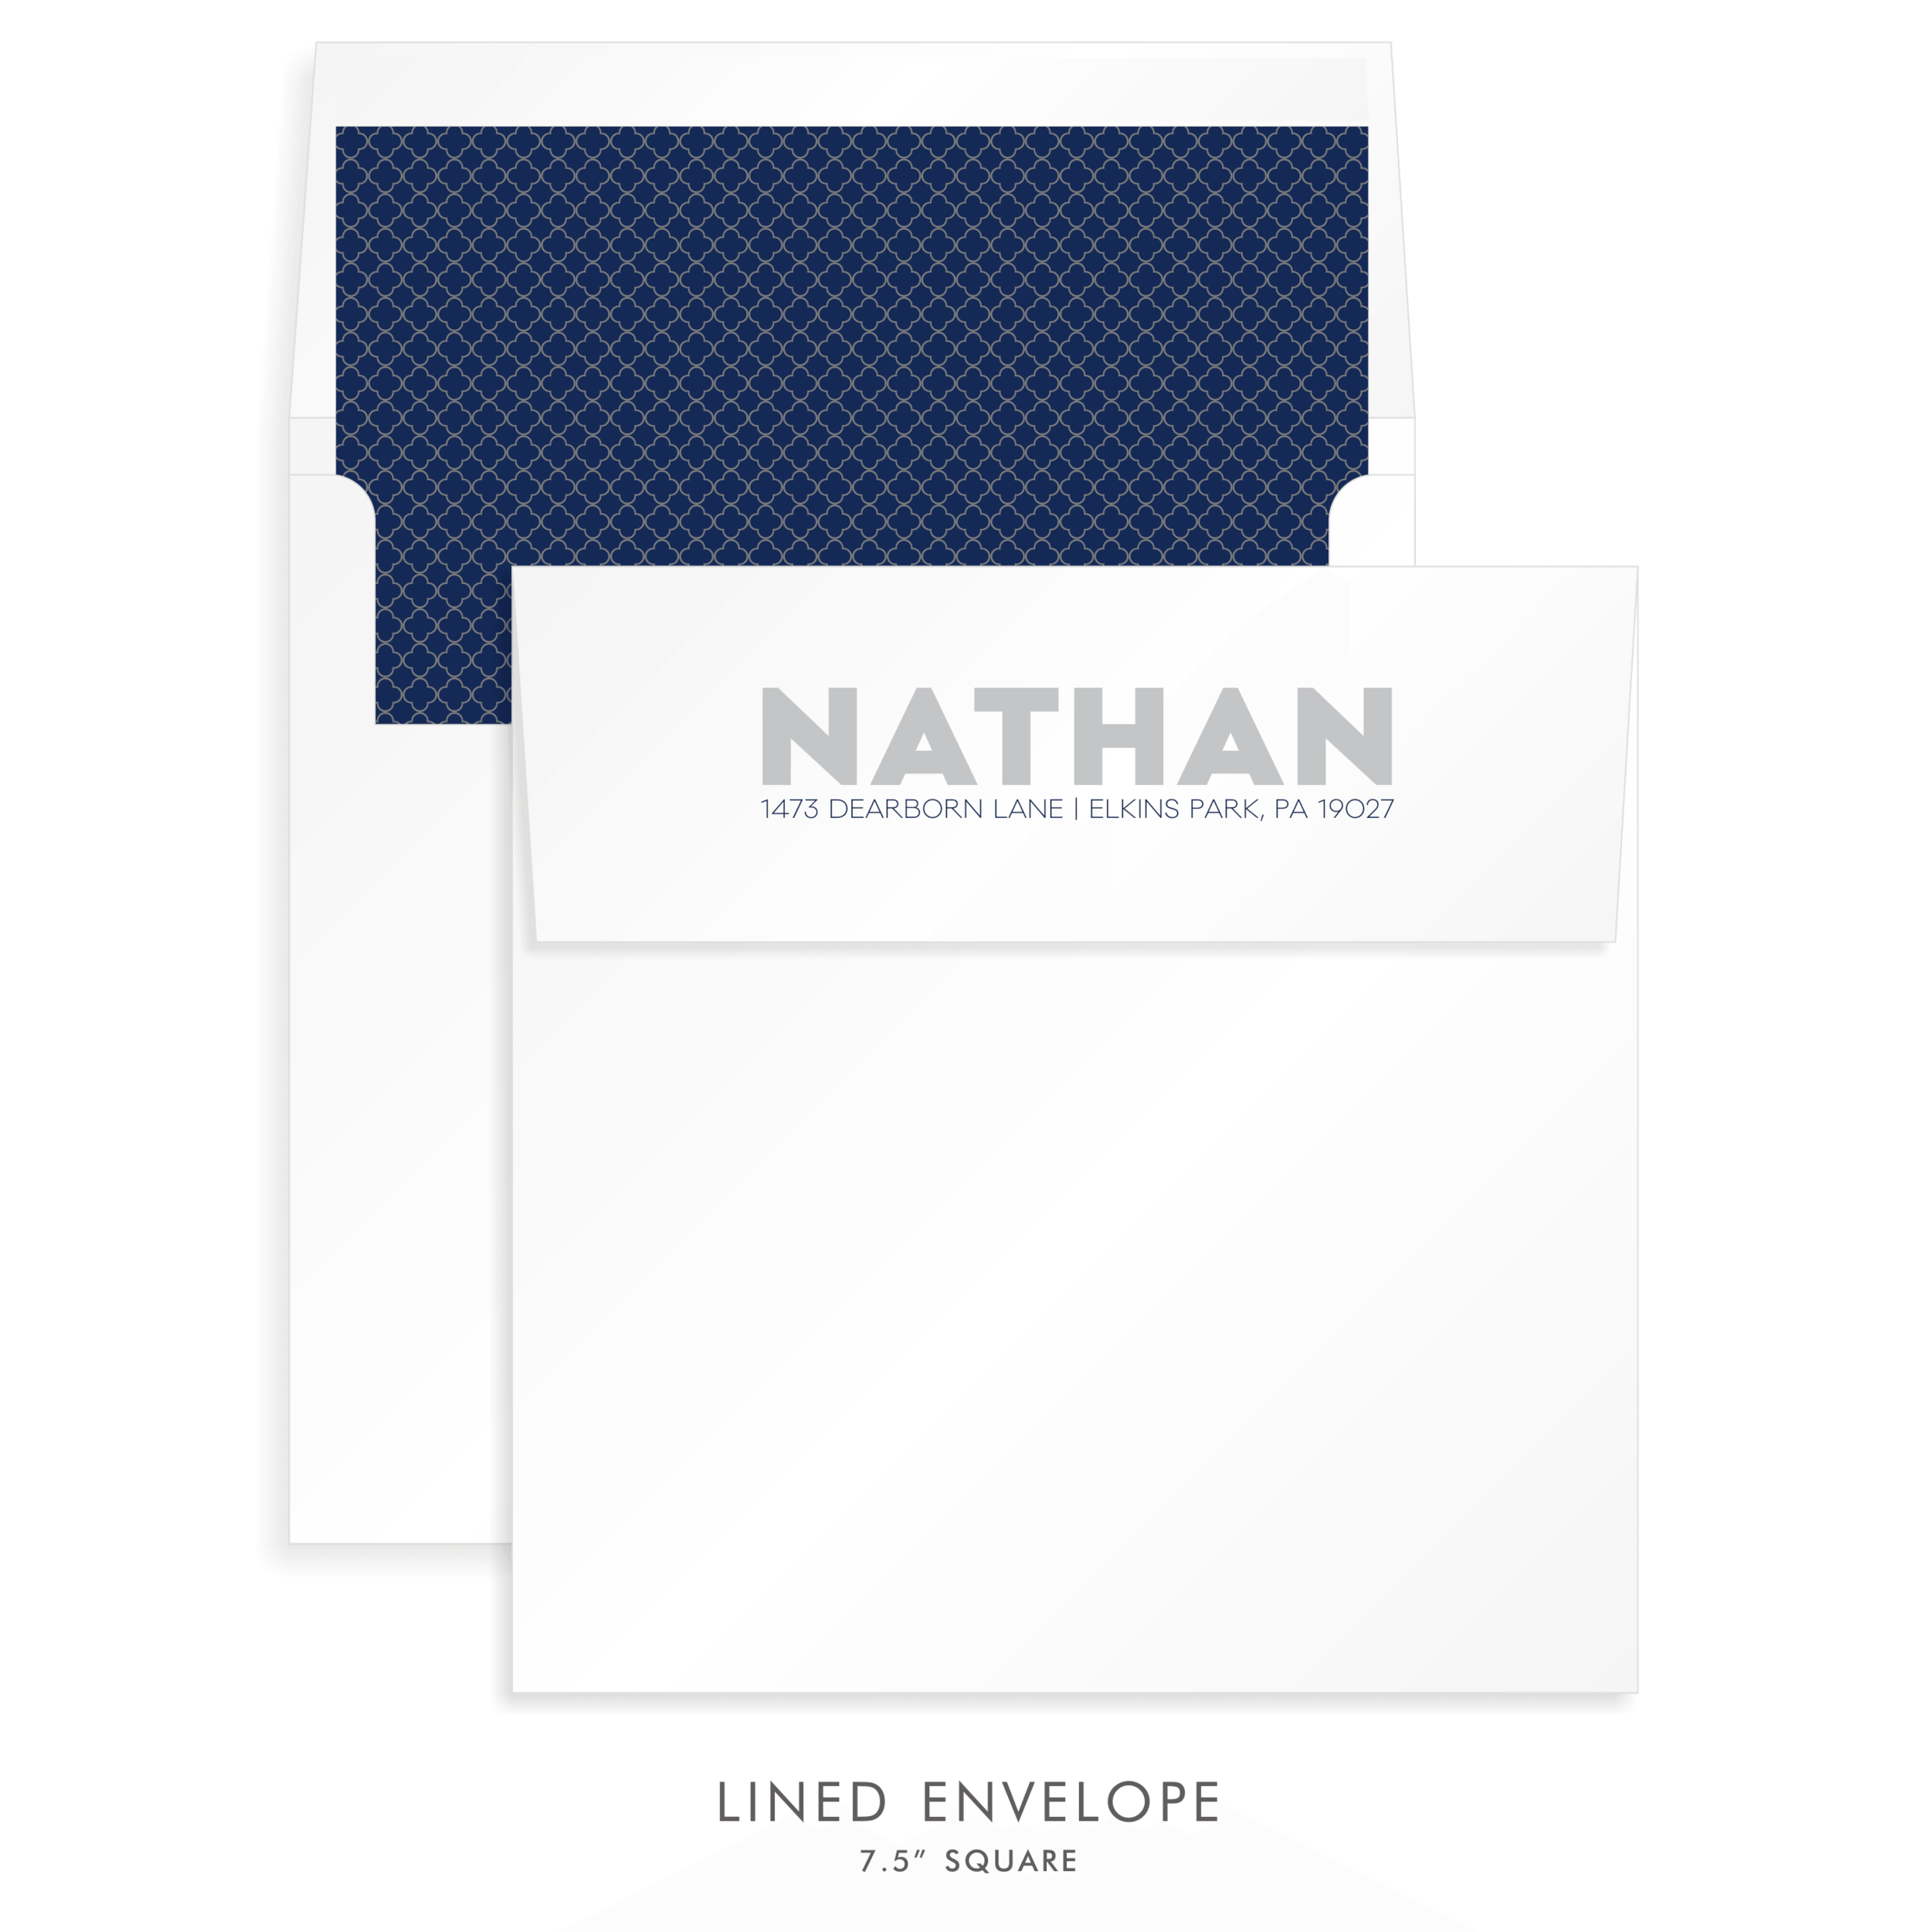 05 BAT MITZVAH INVITE SUITE 5263  INVITE ENVELOPE.png